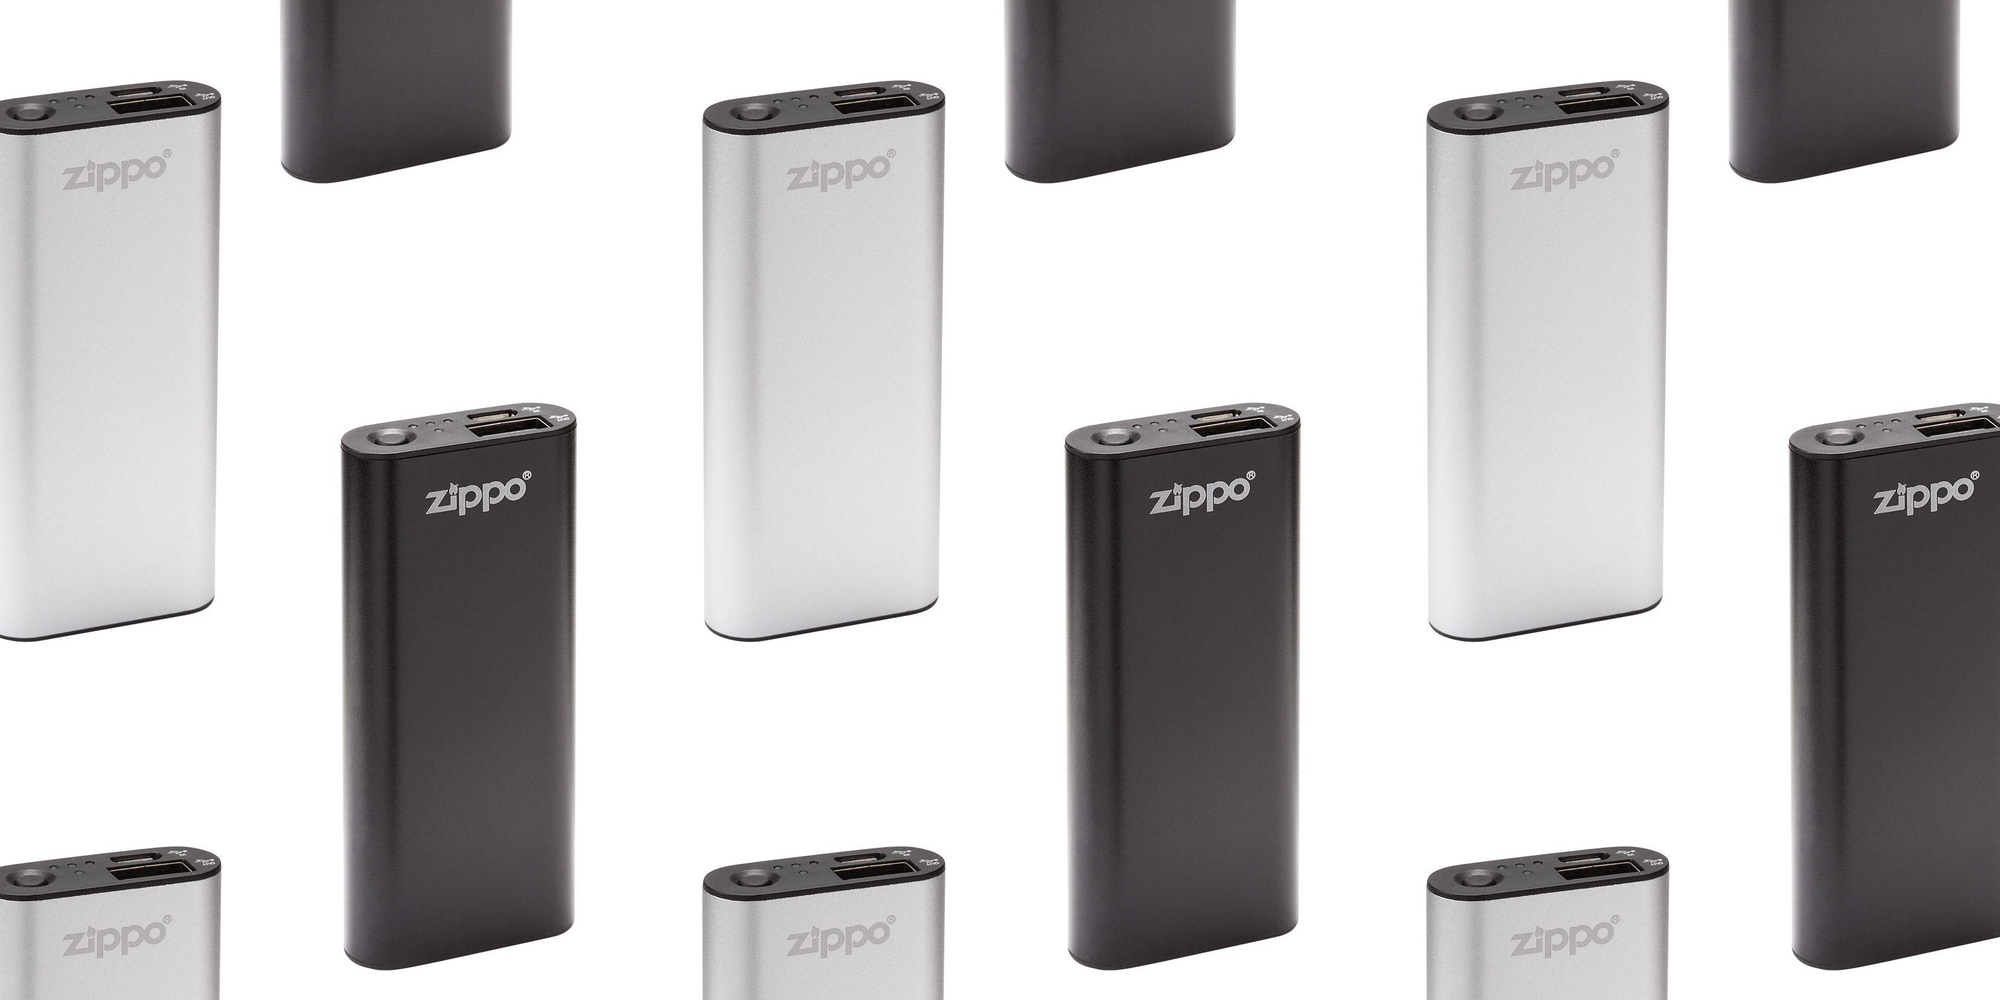 Zippo's rechargeable HeatBank 3 Hand Warmer keeps your mitts toasty for $18 (25% off)